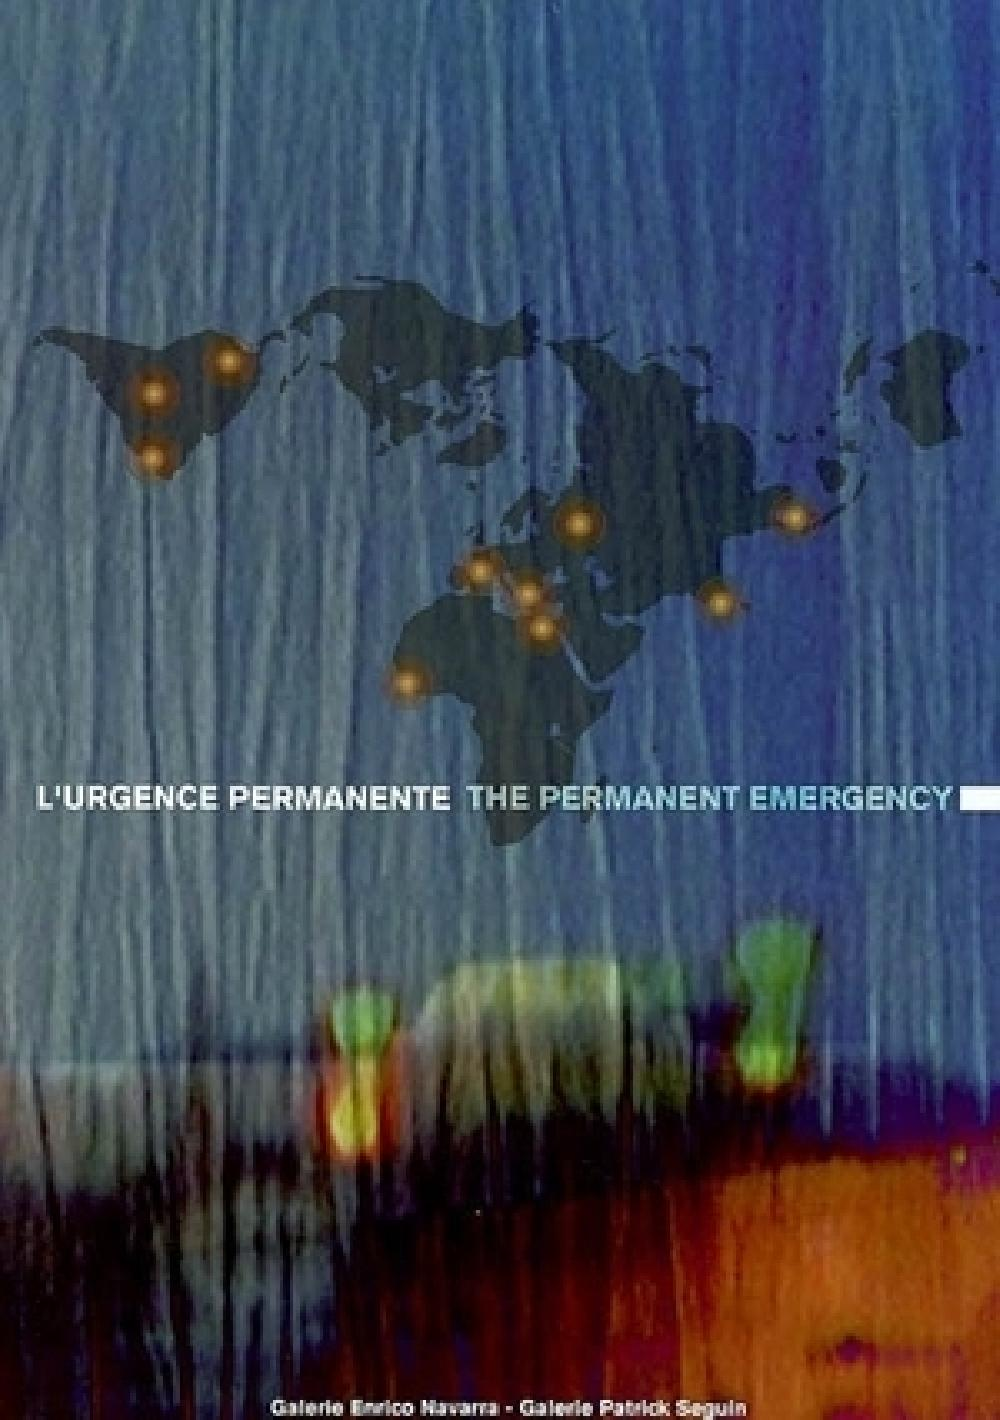 L'urgence permanente / The permanent emergency